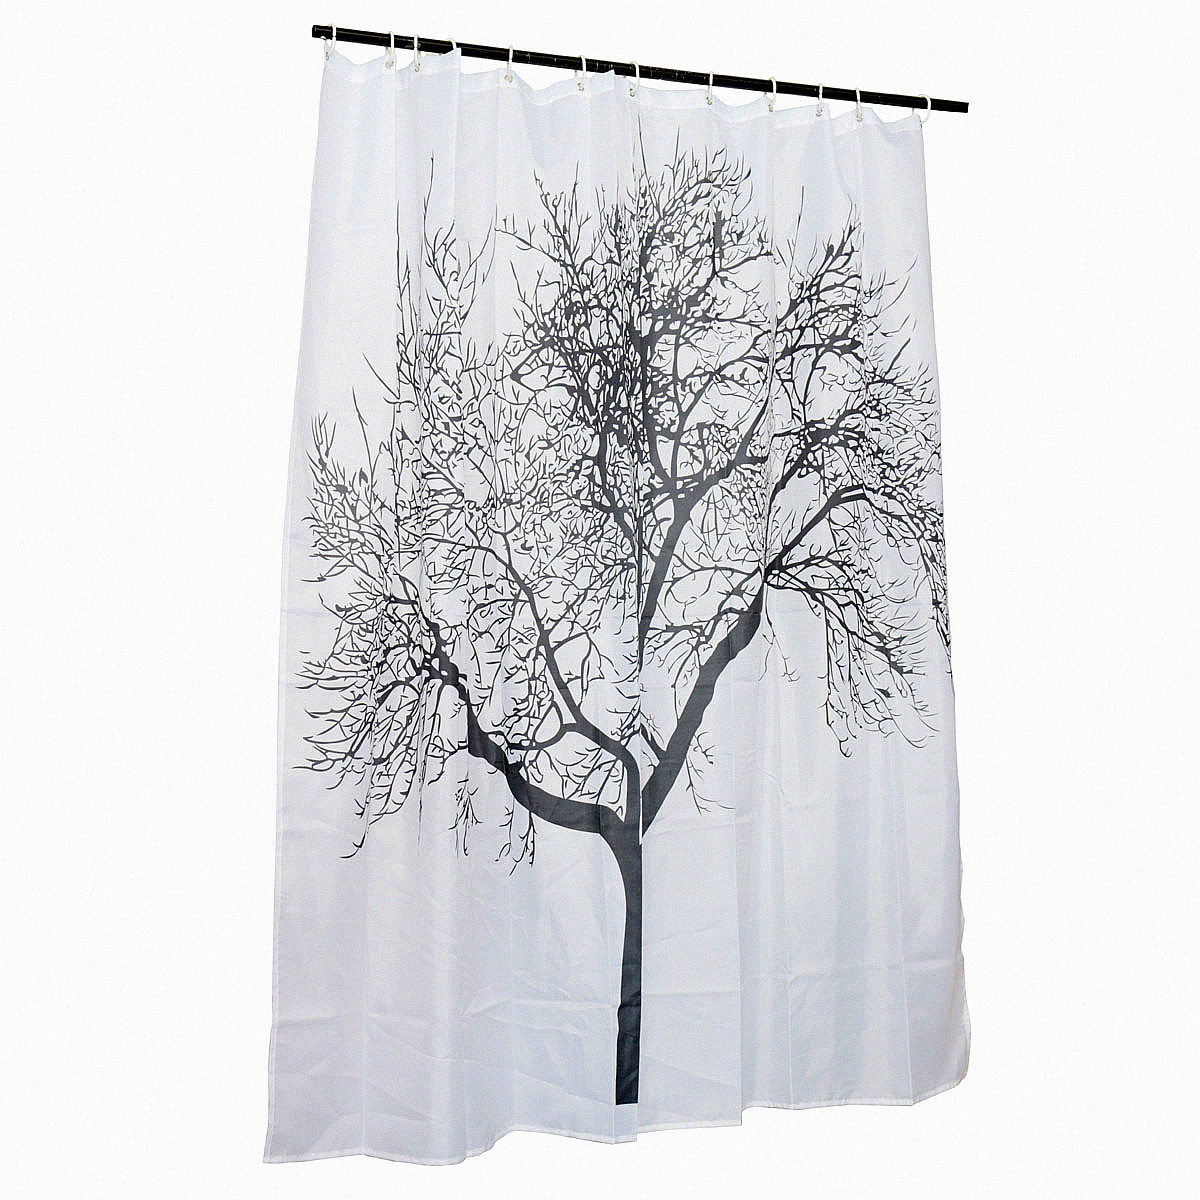 Tree Waterproof Fabric Bathroom Shower Curtain With 12 Hooks Polyester 180x180cm Lazada Malaysia